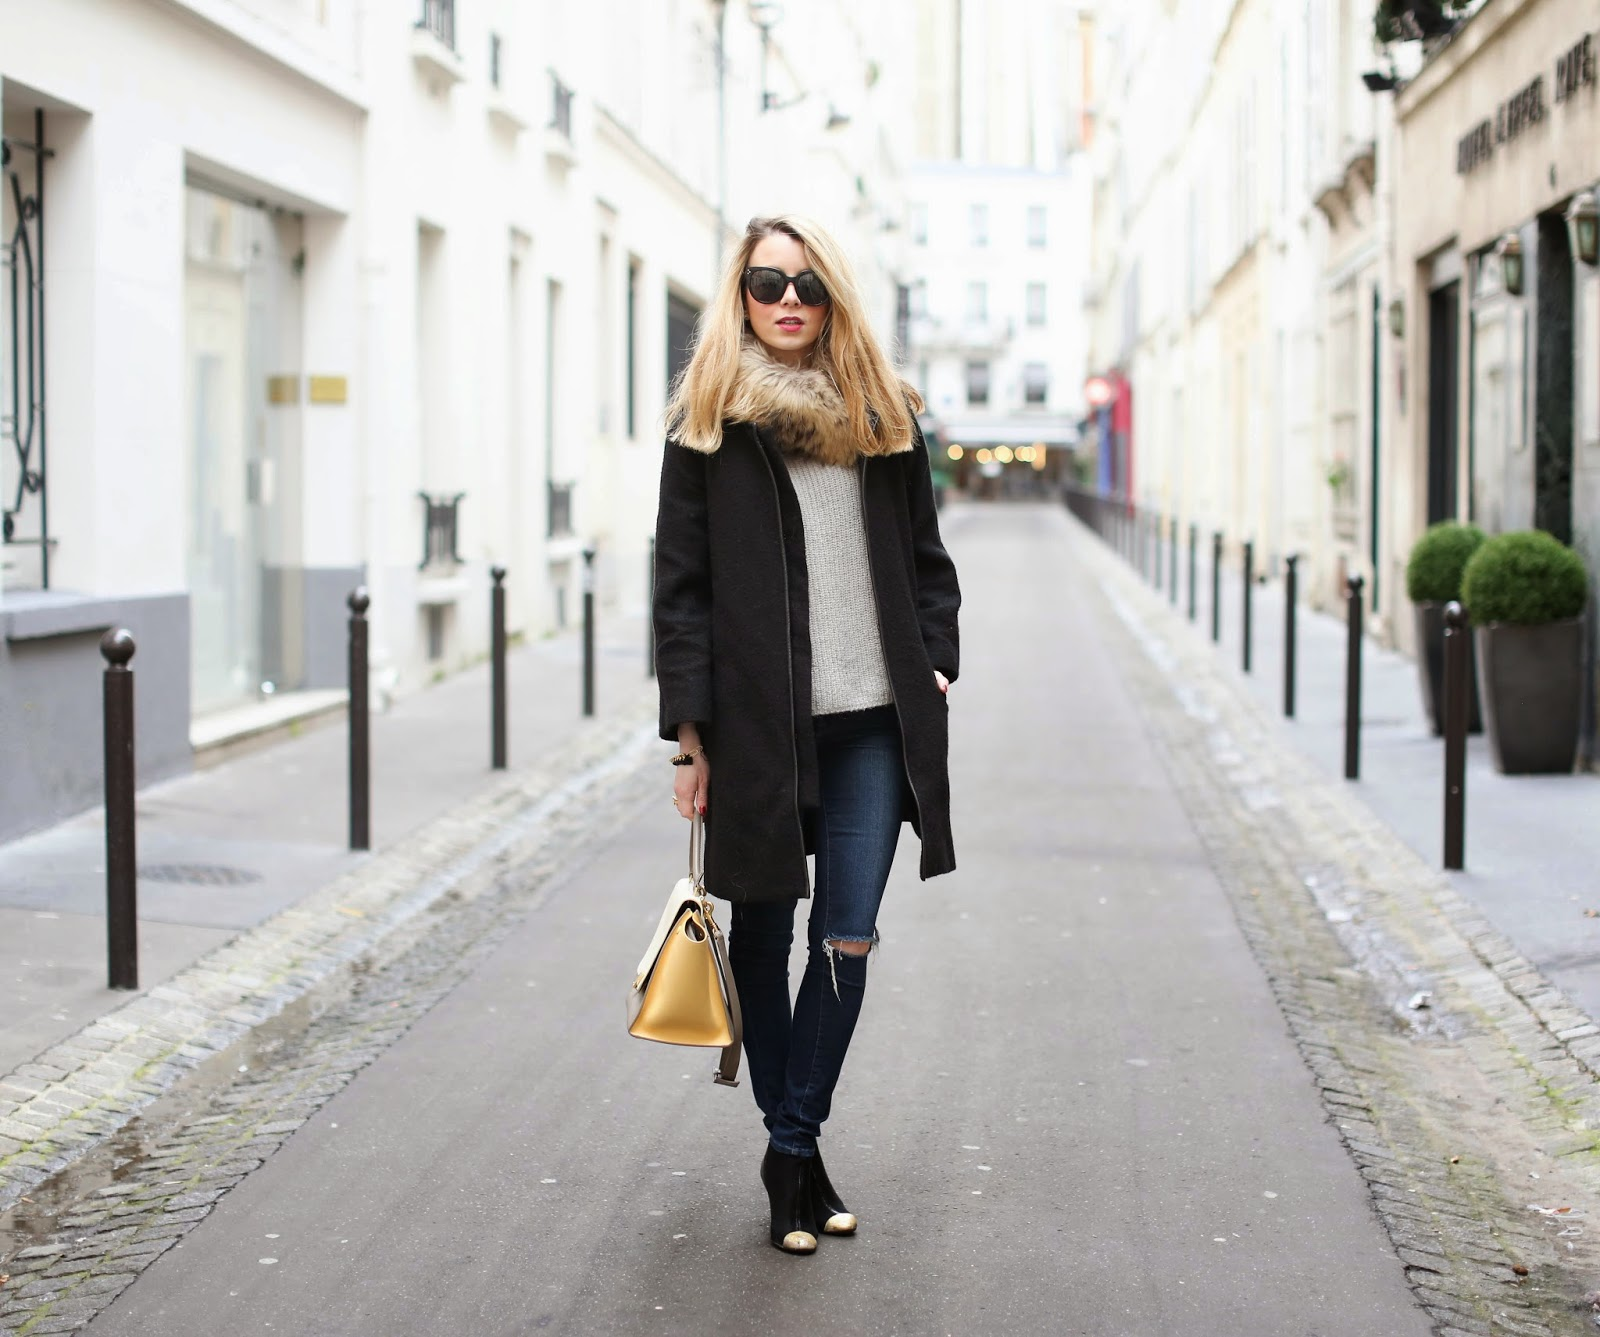 Céline, fur, chanel, isabel marant, streetstyle, fashion blogger, paris